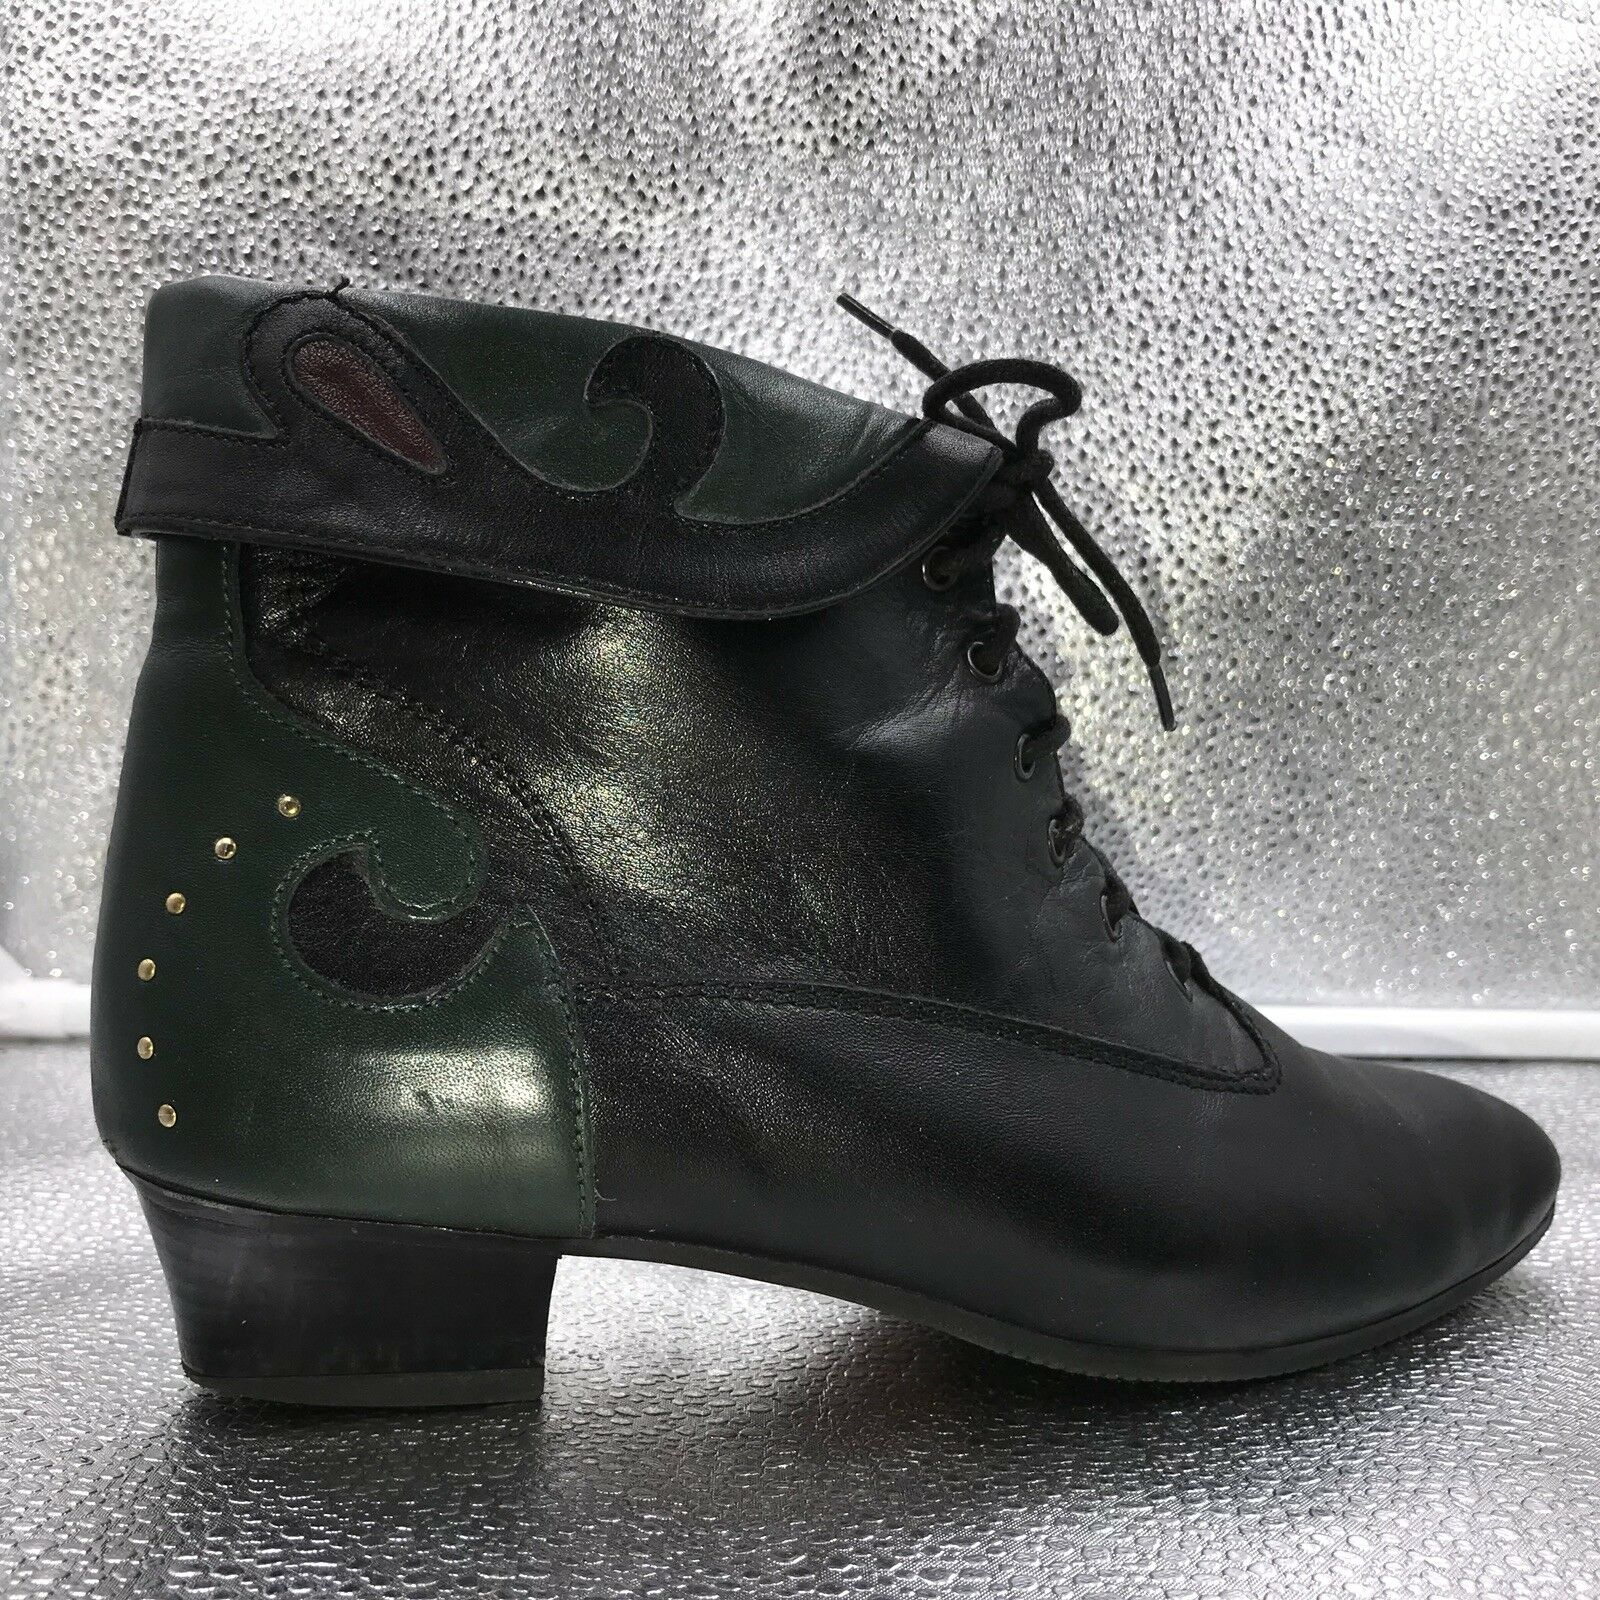 Vintage Sz37 Sz37 Sz37 4 Bally Black & Green Leather Ankle Boots Booties With Studs Womens fb555f